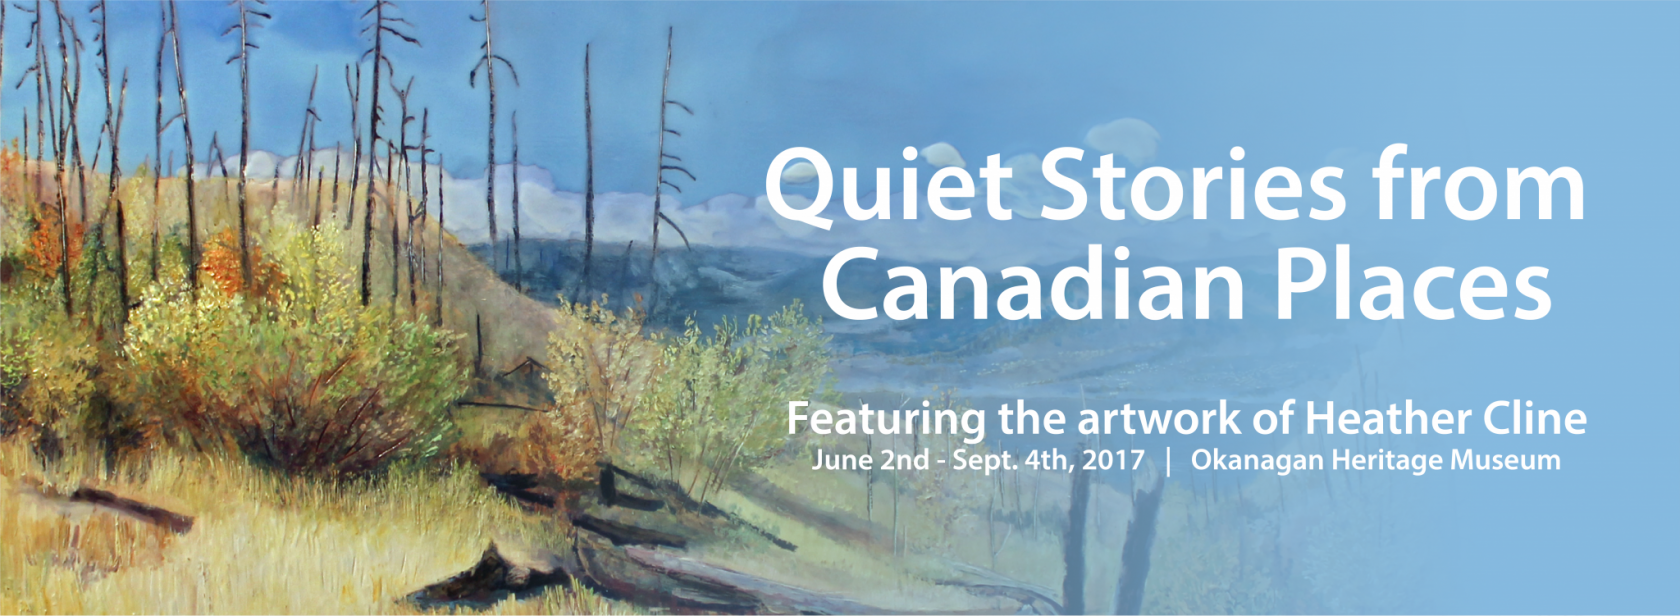 Kelowna Museums Quiet Stories From Canadian Places WebBanner v1 Home